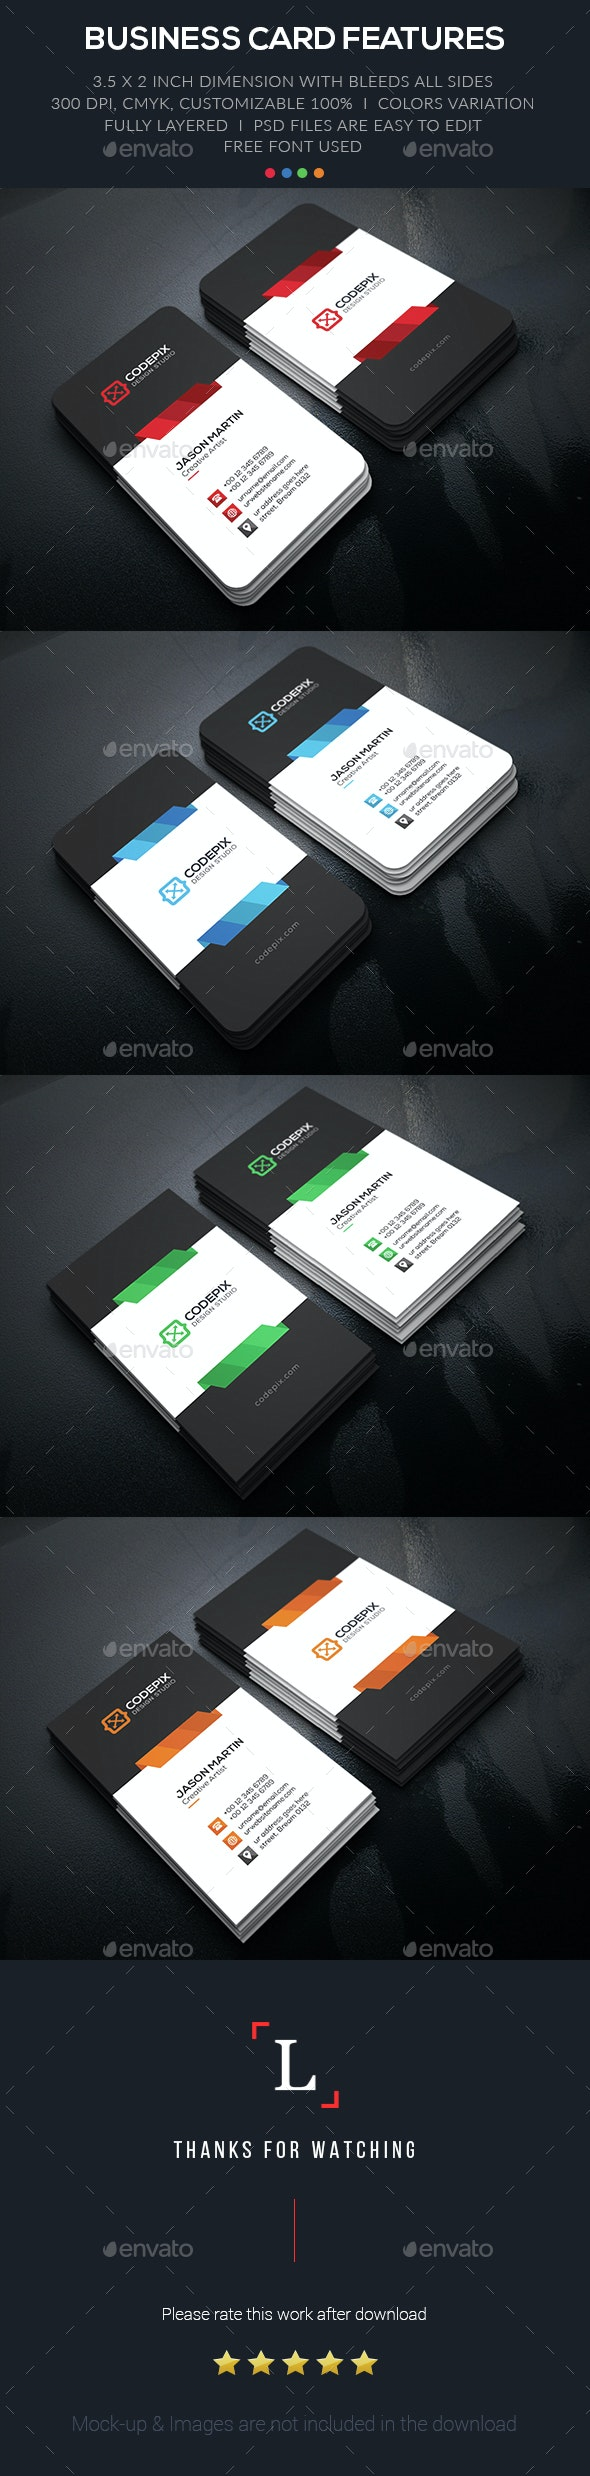 Shade Creative Business Card - Business Cards Print Templates